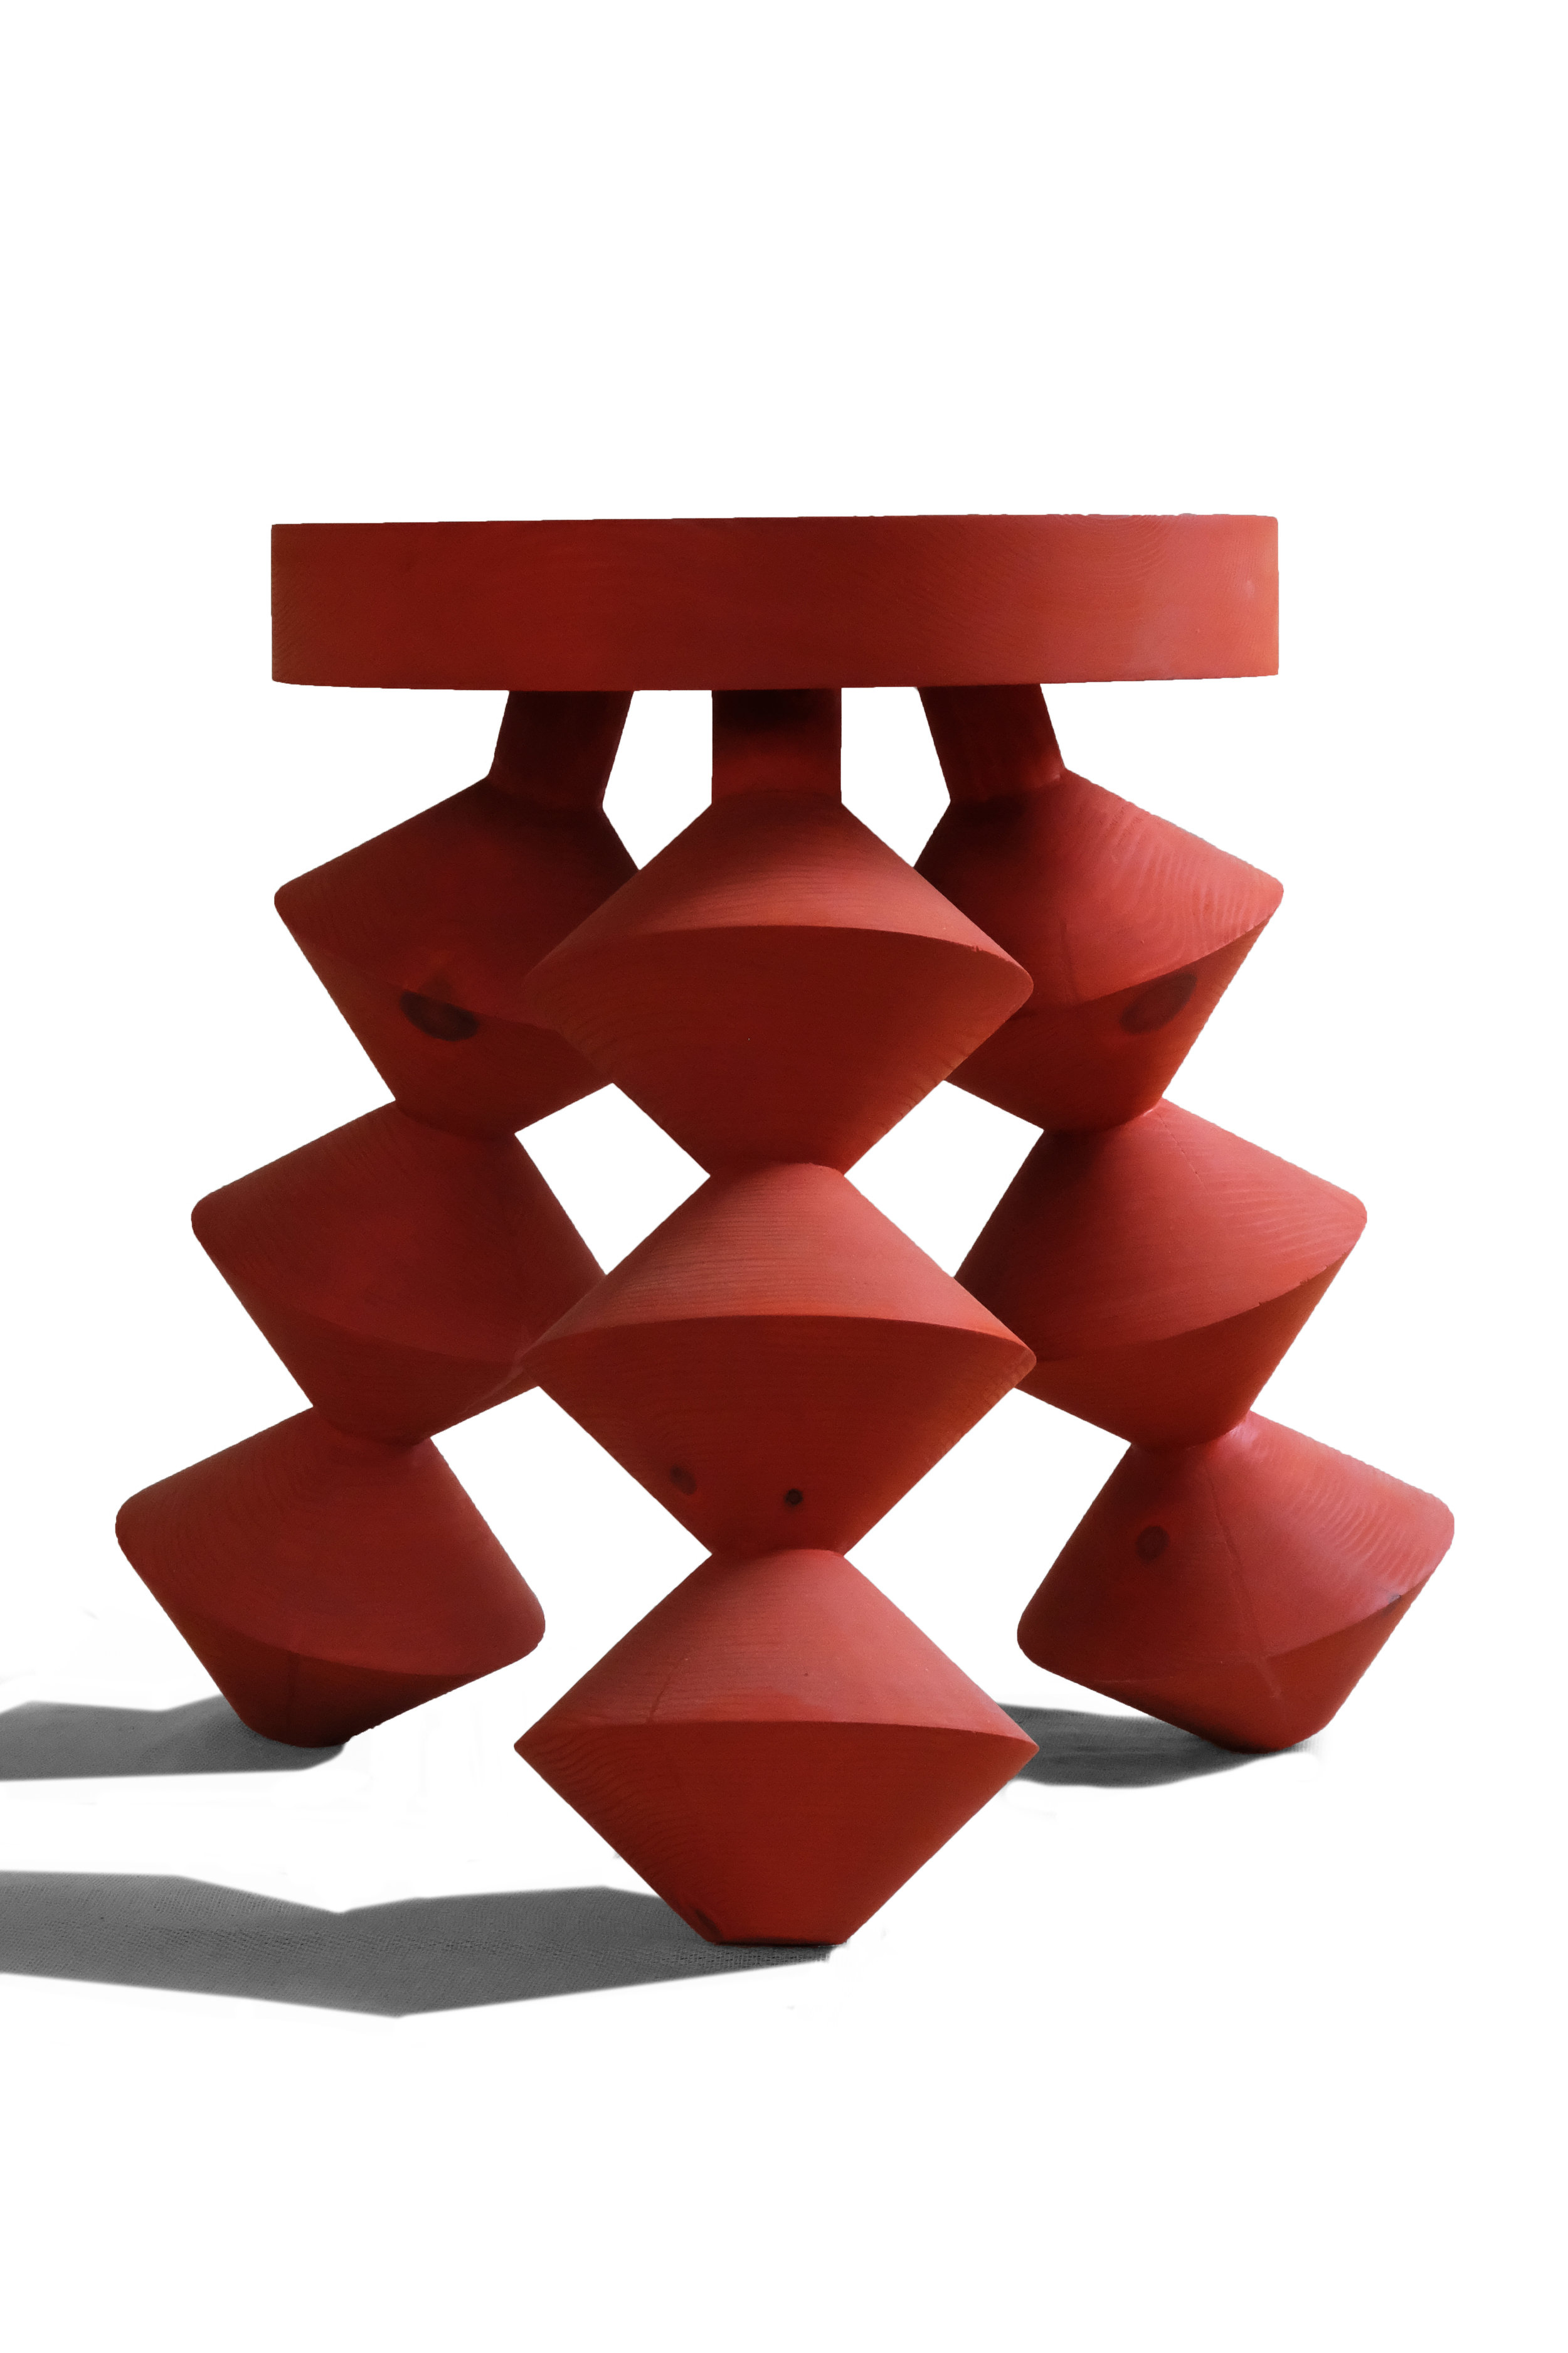 Primitive Forms  |  Red Stool  | Red Wood | © Phat Design